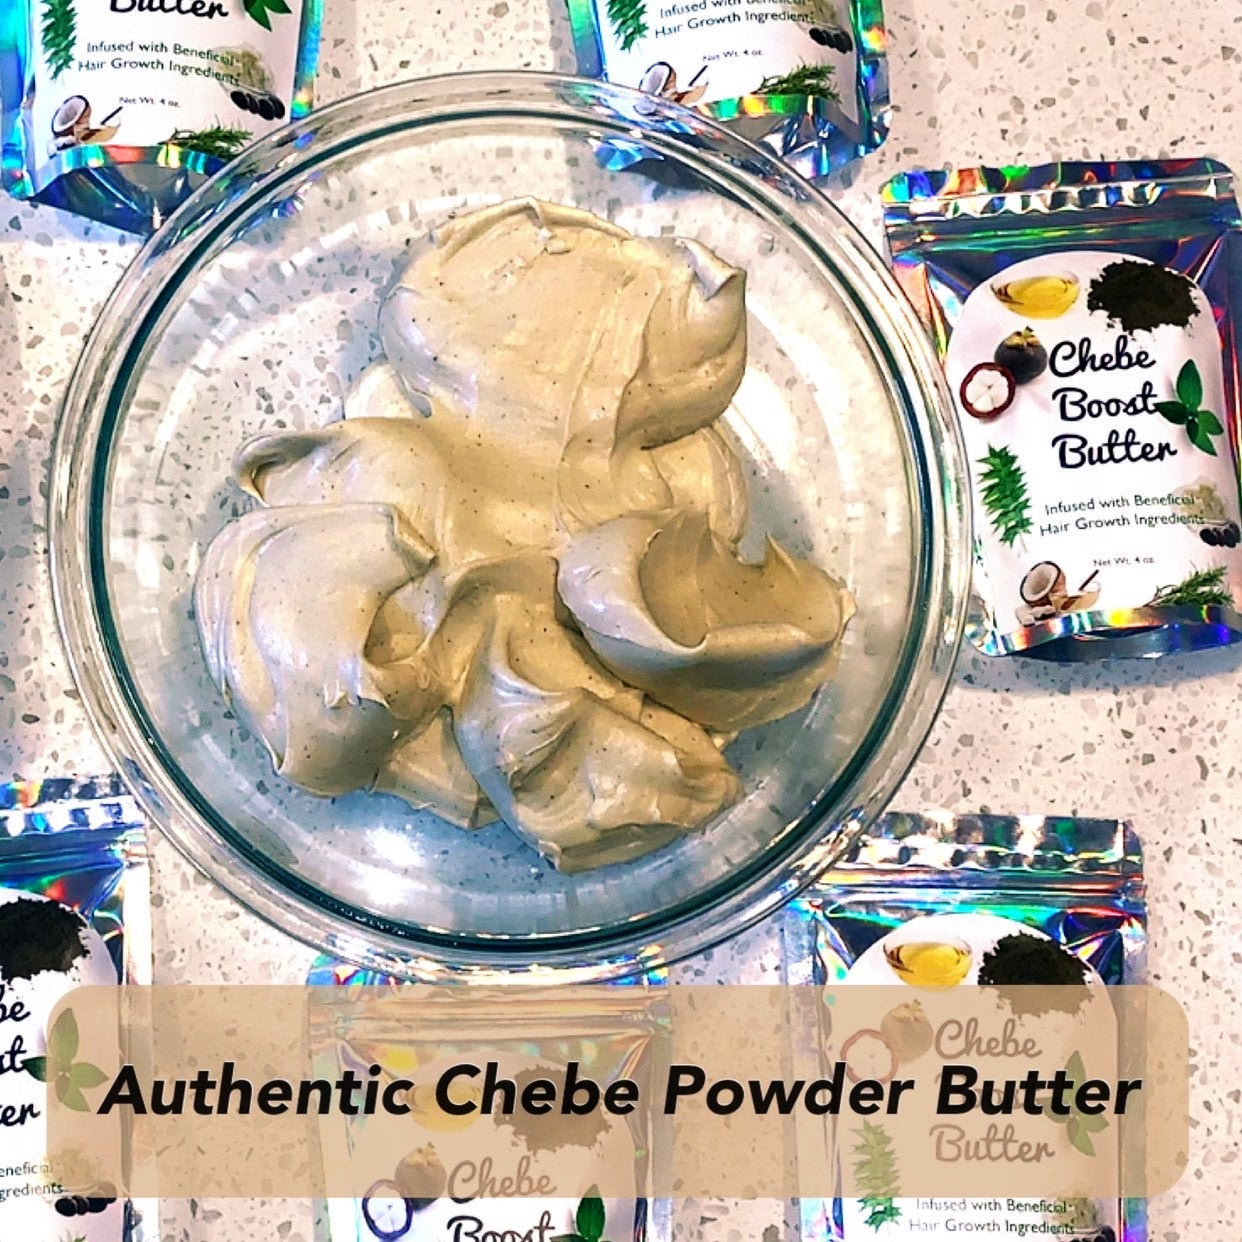 Chebe Butter For Hair Growth African Chebe Powder And Indian